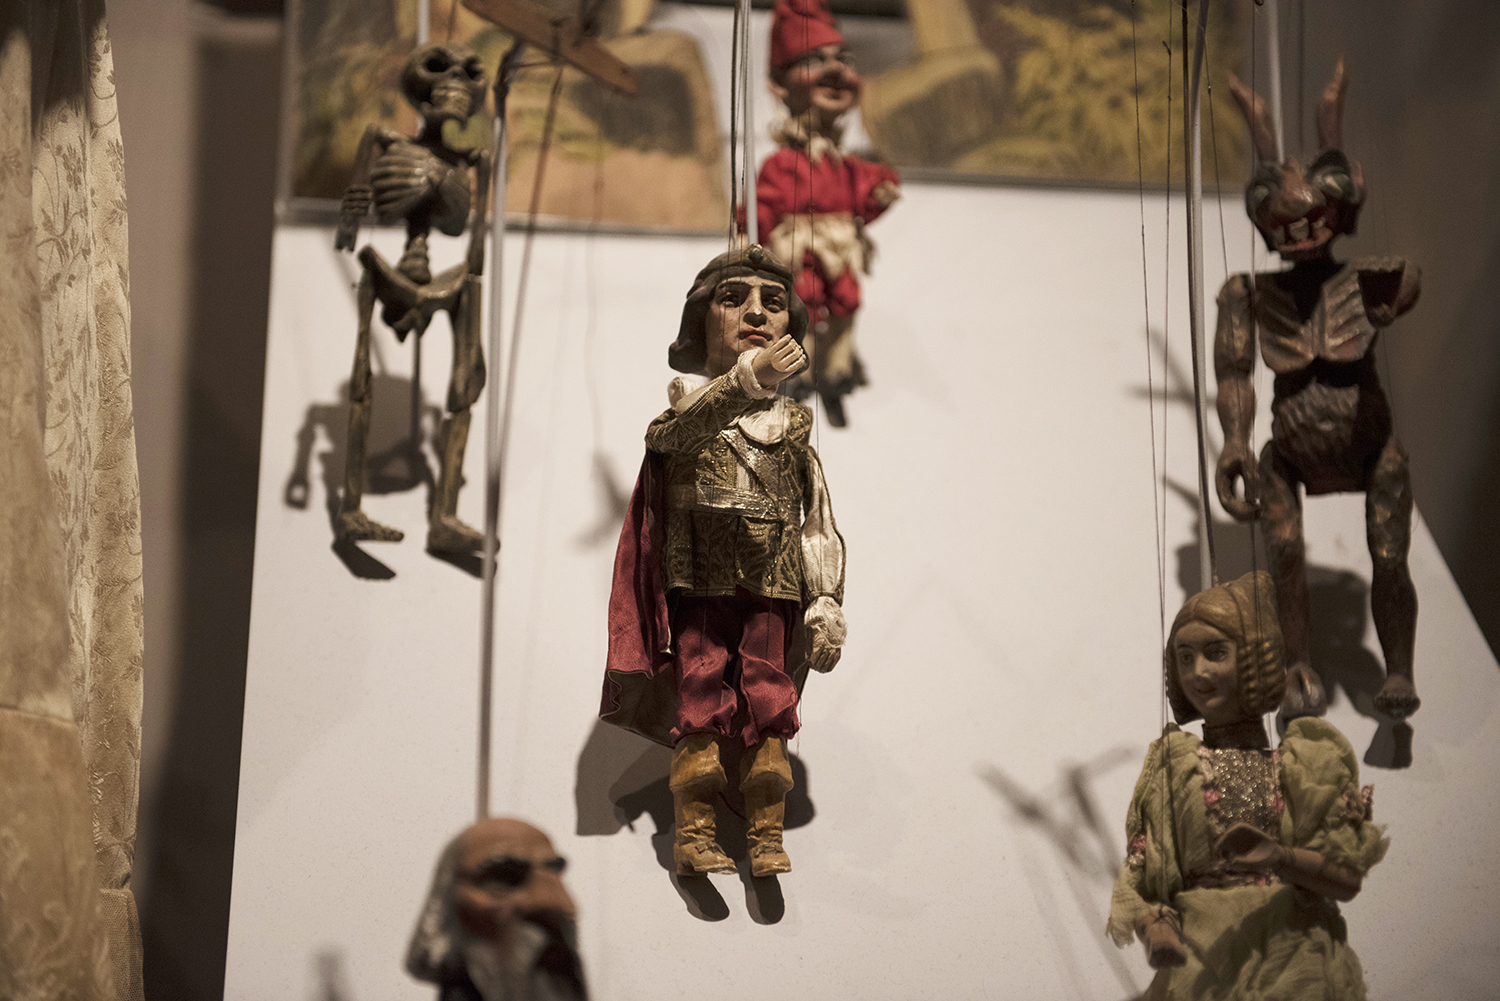 Czech Puppets, 1920s.| Special Collections Gallery at the Heinz History Center